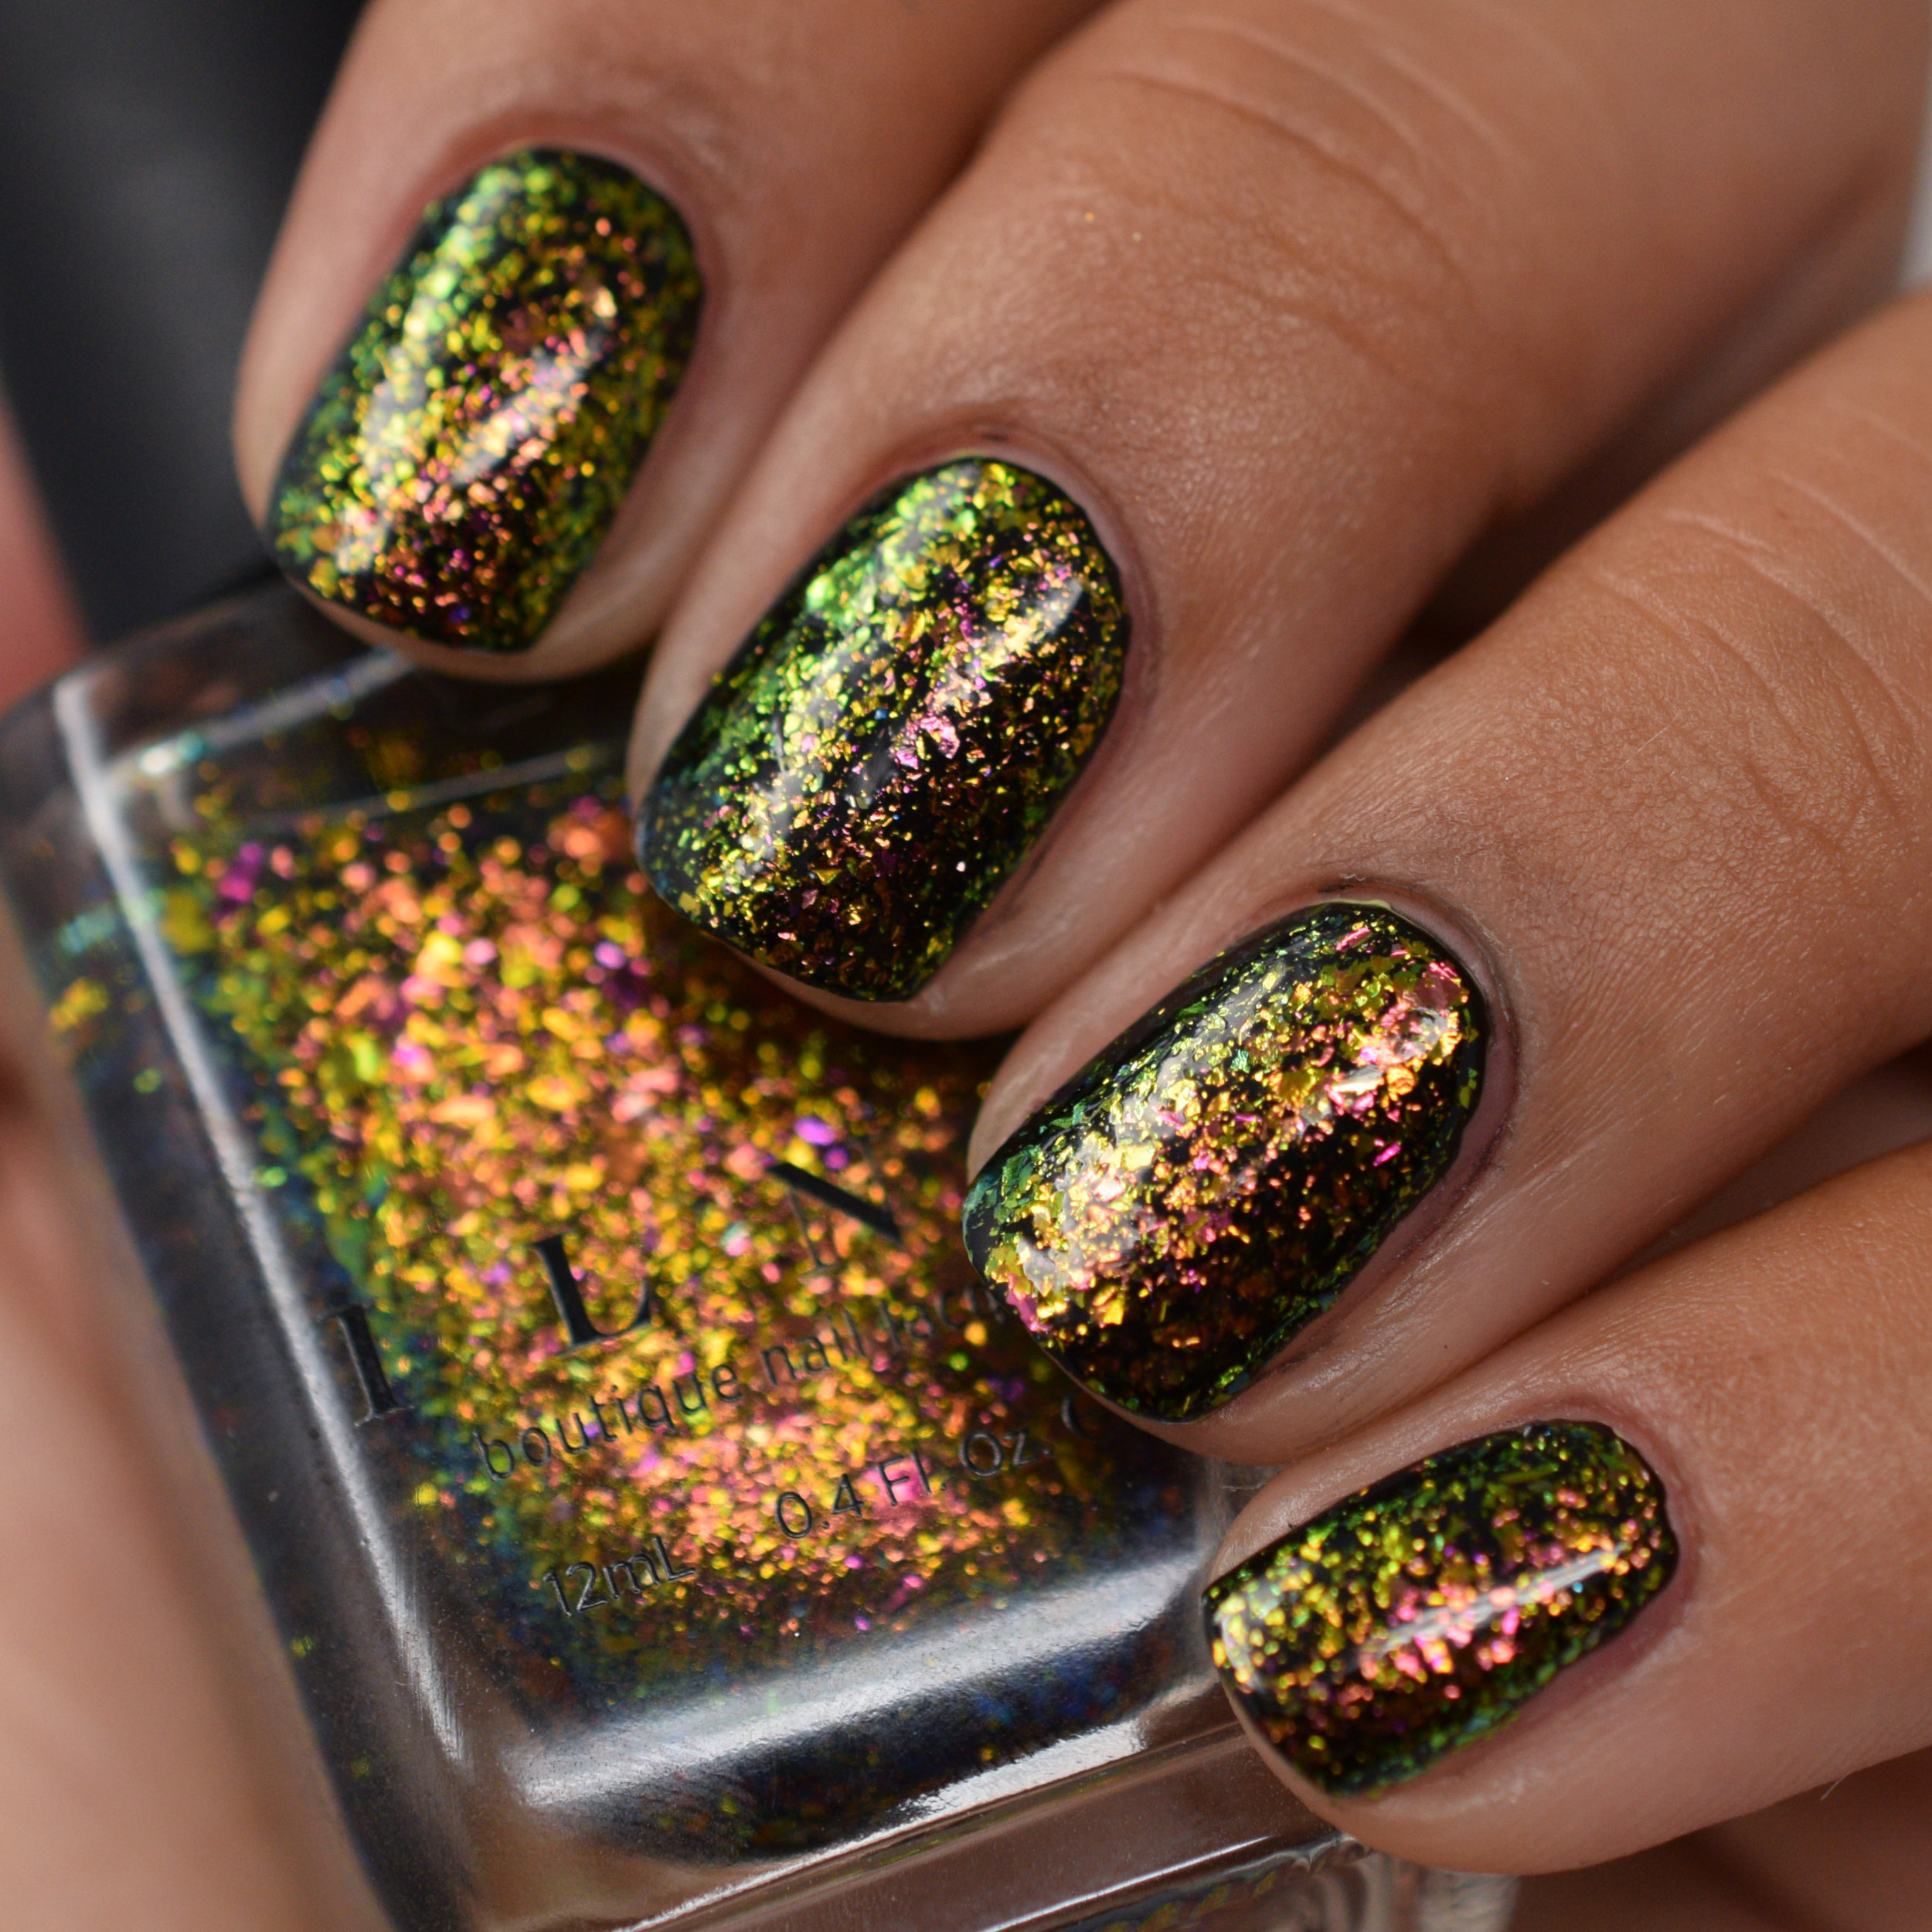 ILNP Ultra Chrome Flakies 2014 - Brilliance.jpg